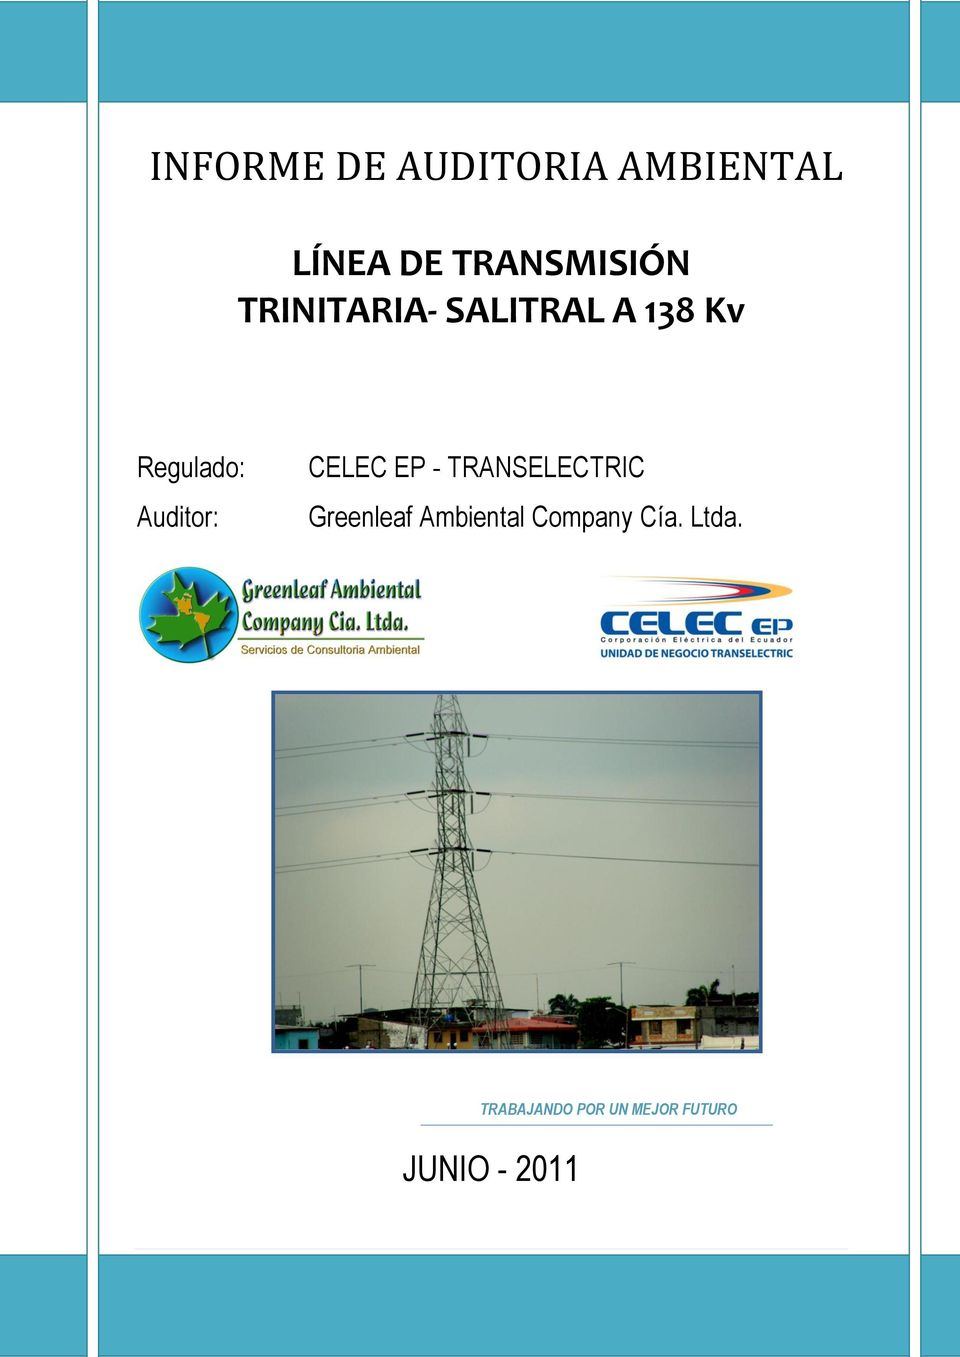 CELEC EP - TRANSELECTRIC Greenleaf Ambiental Company